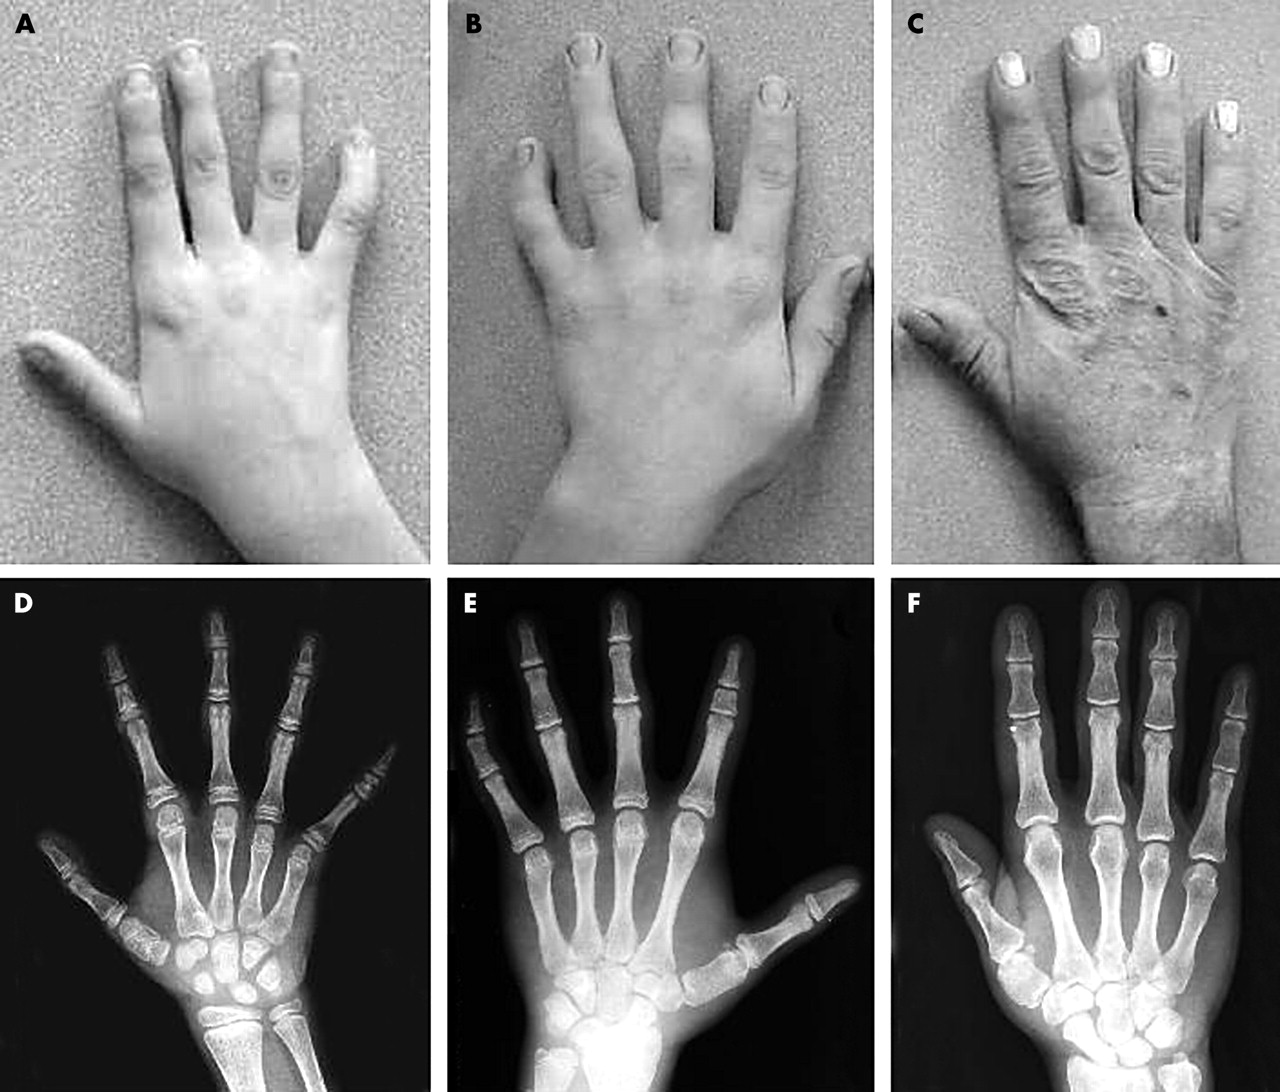 Angel Shaped Phalangeal Dysplasia Hip And Positional The Root Of Middle Finger On Index Bone See Diagram Download Figure Open In New Tab